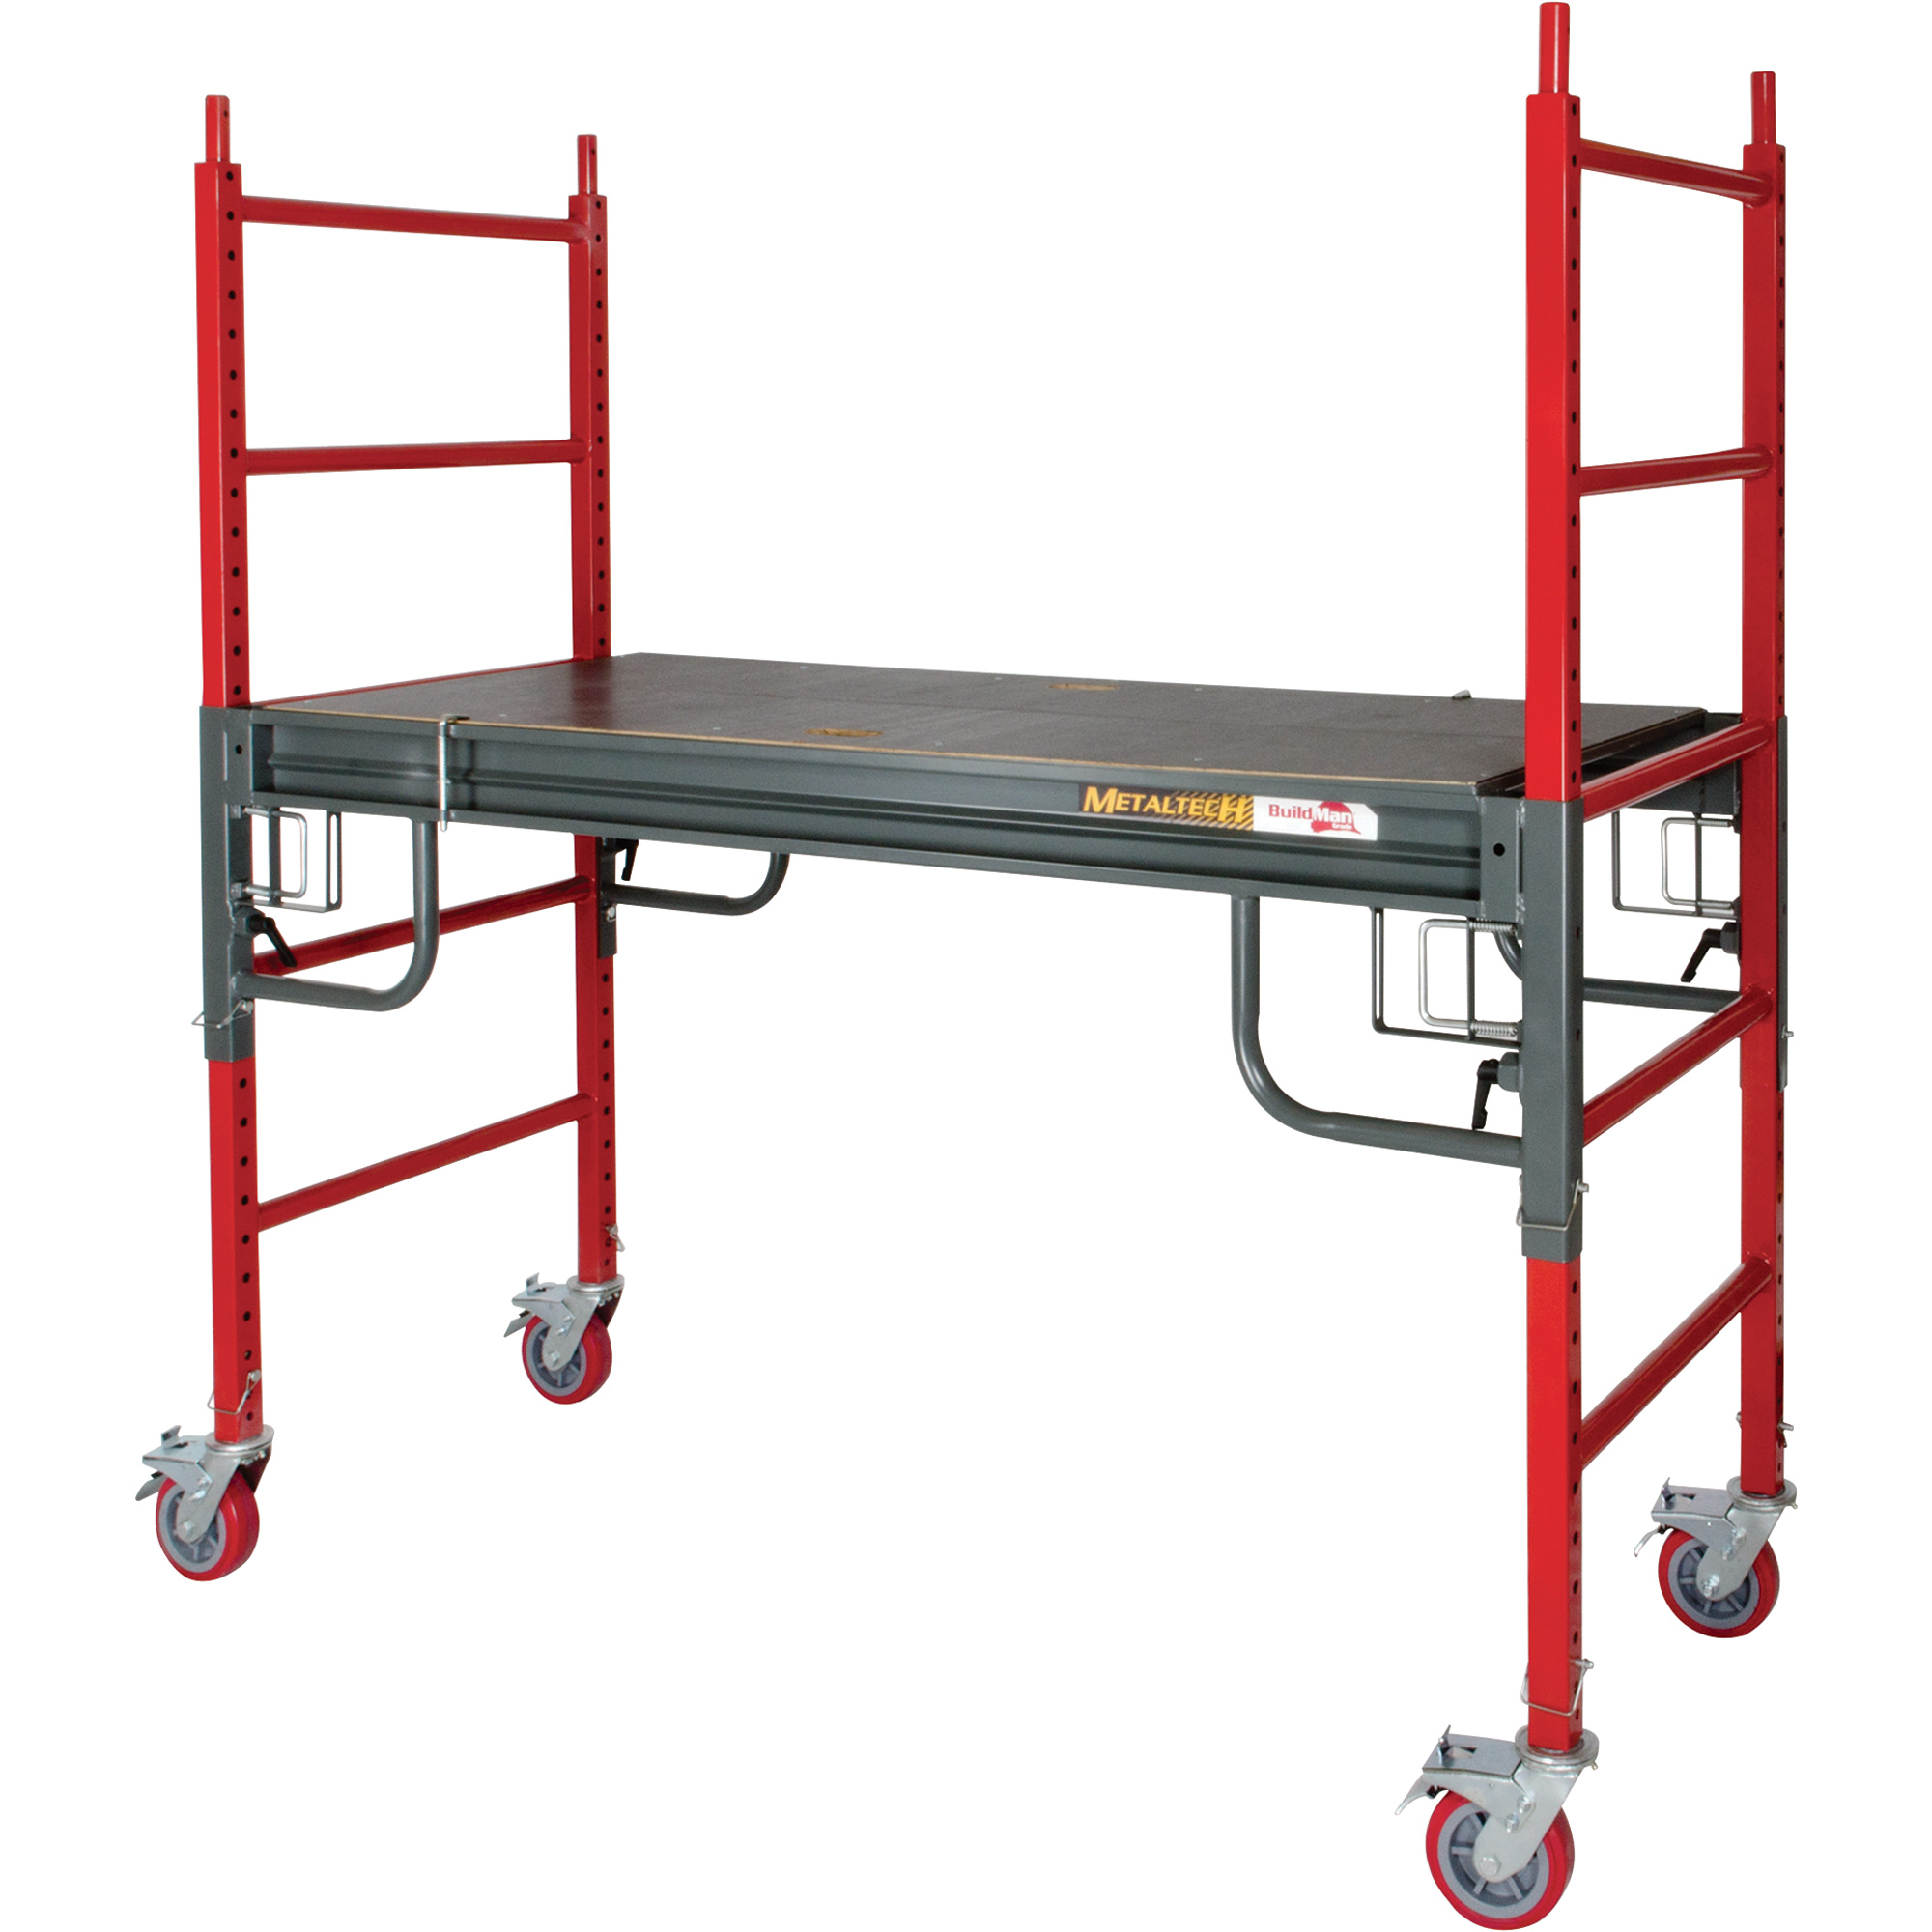 6' Bakers Scaffolding (1500lb rating) $15/half $25/day $75/week